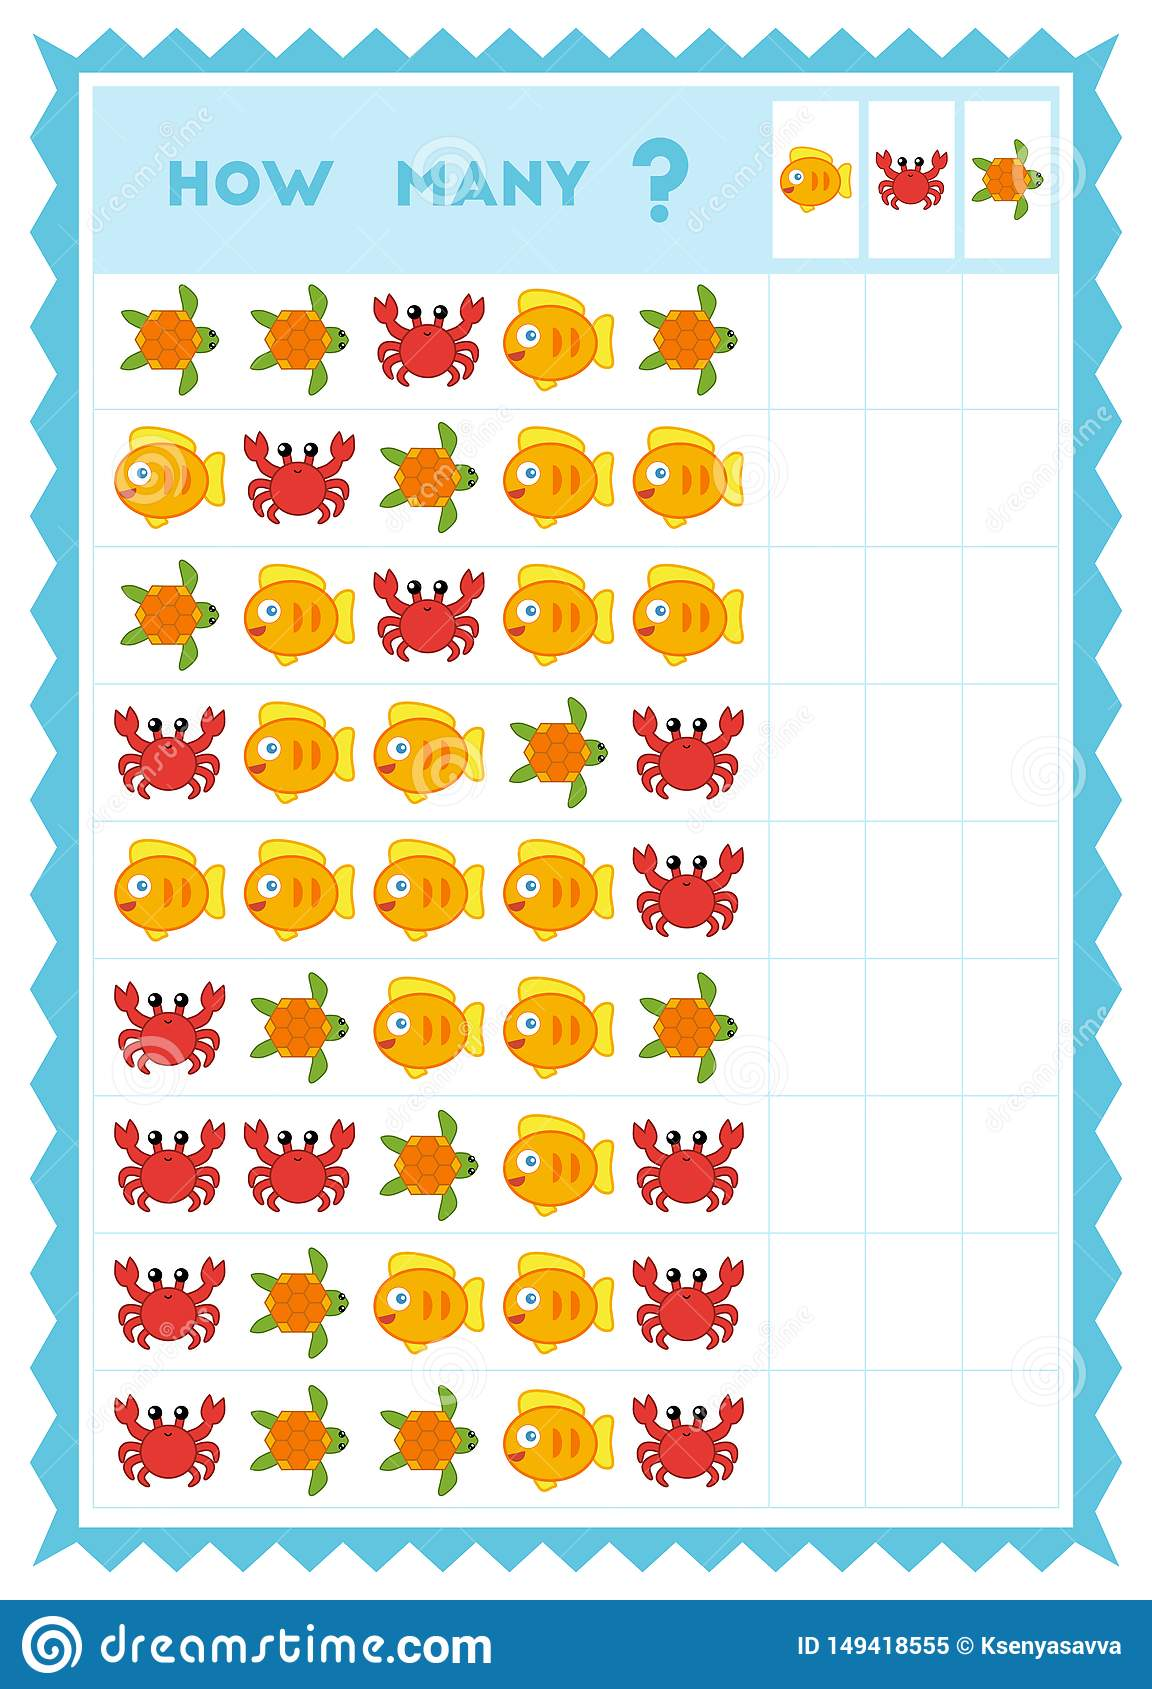 Counting Game Educational Game For Children Count How